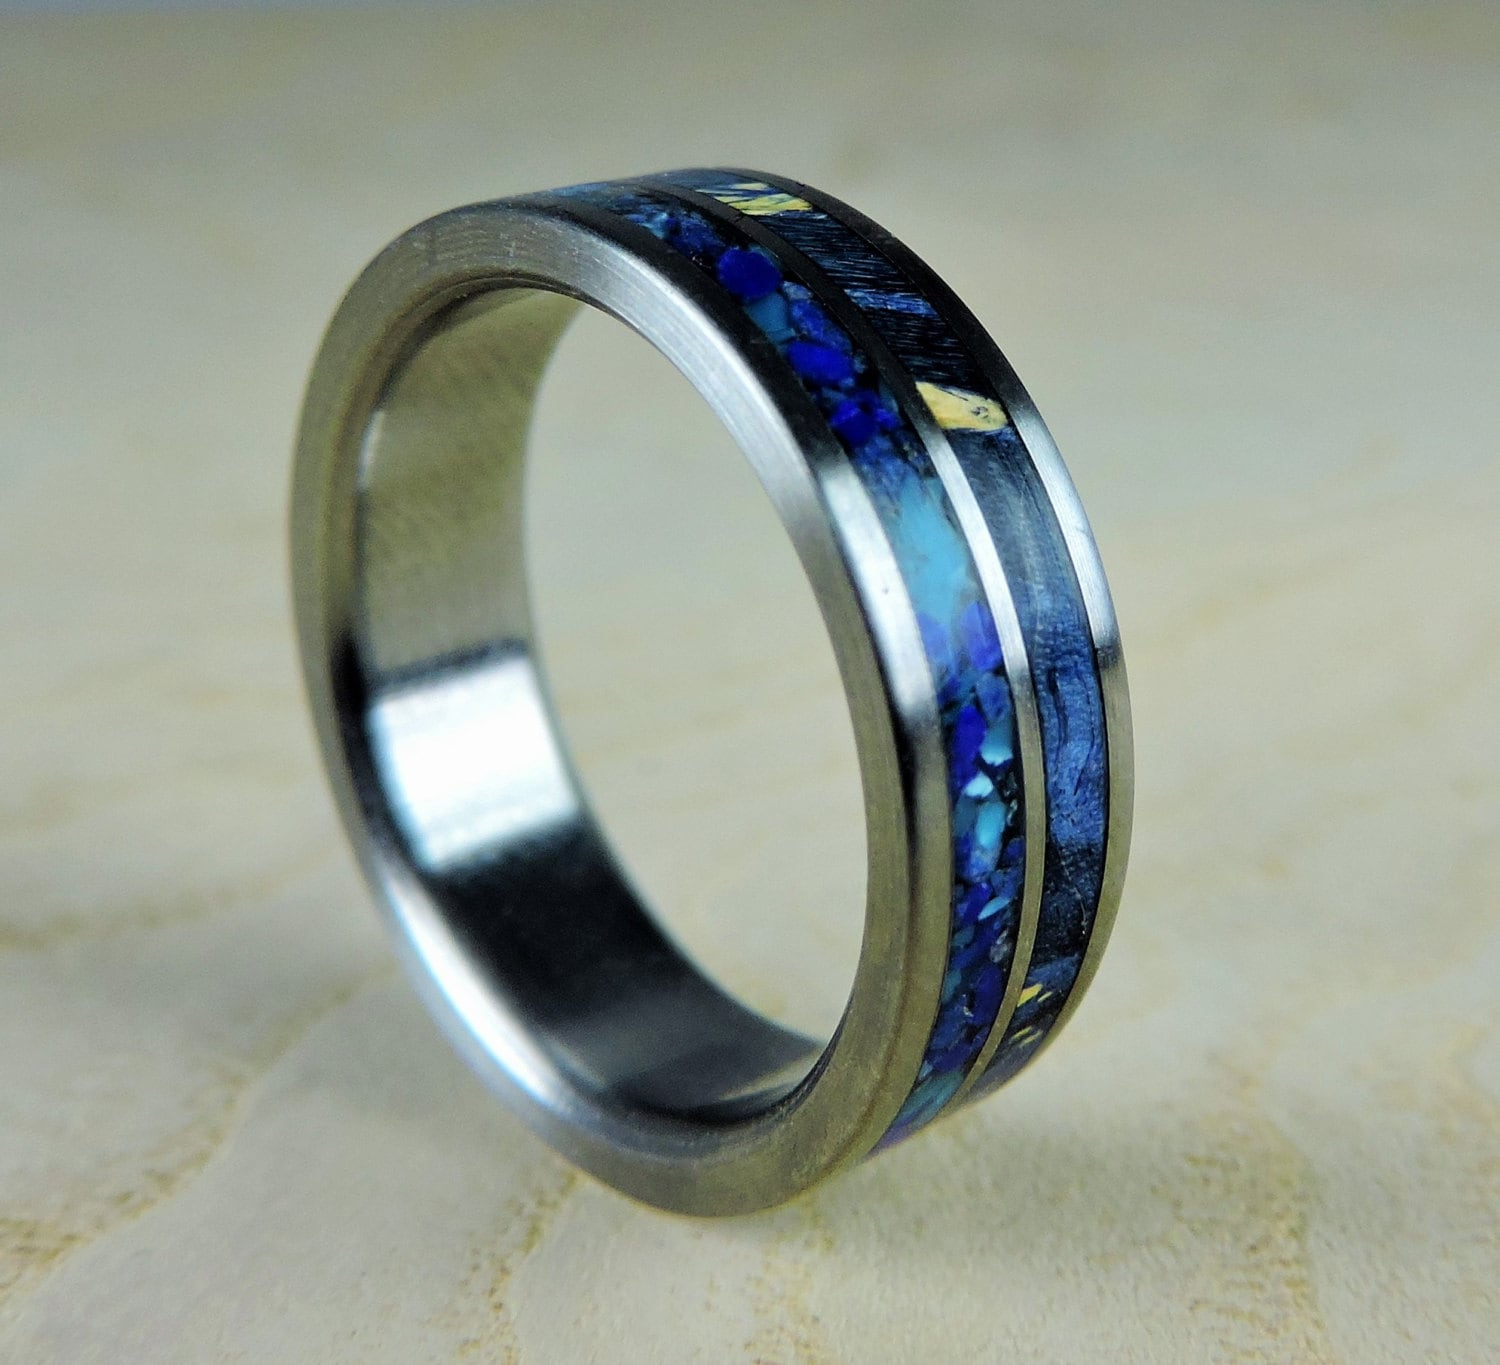 laser titanium bands range mountain s ring band flat edge satin buzz wedding mens carved men finish